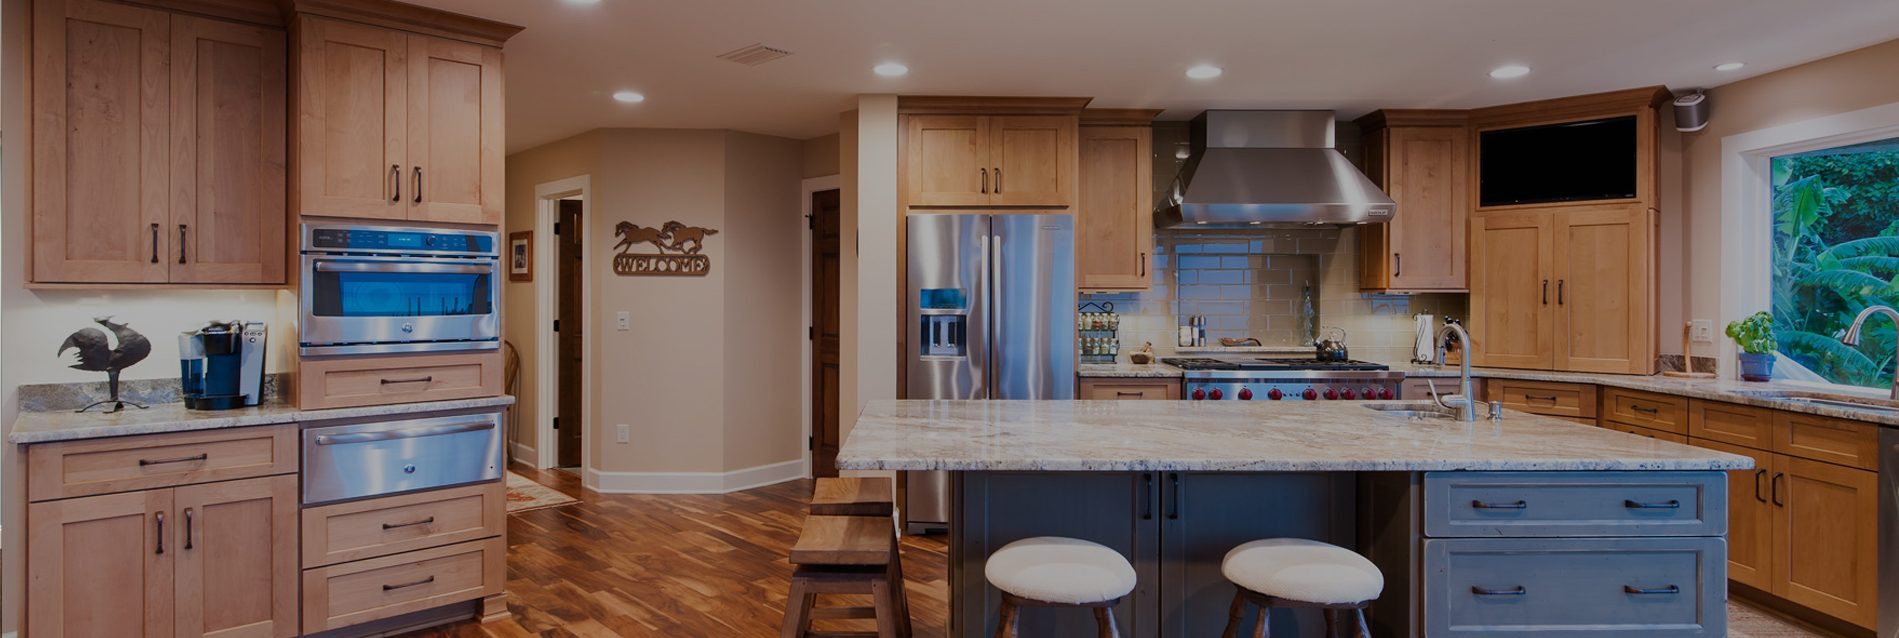 wide shot of home interior kitchen and bar